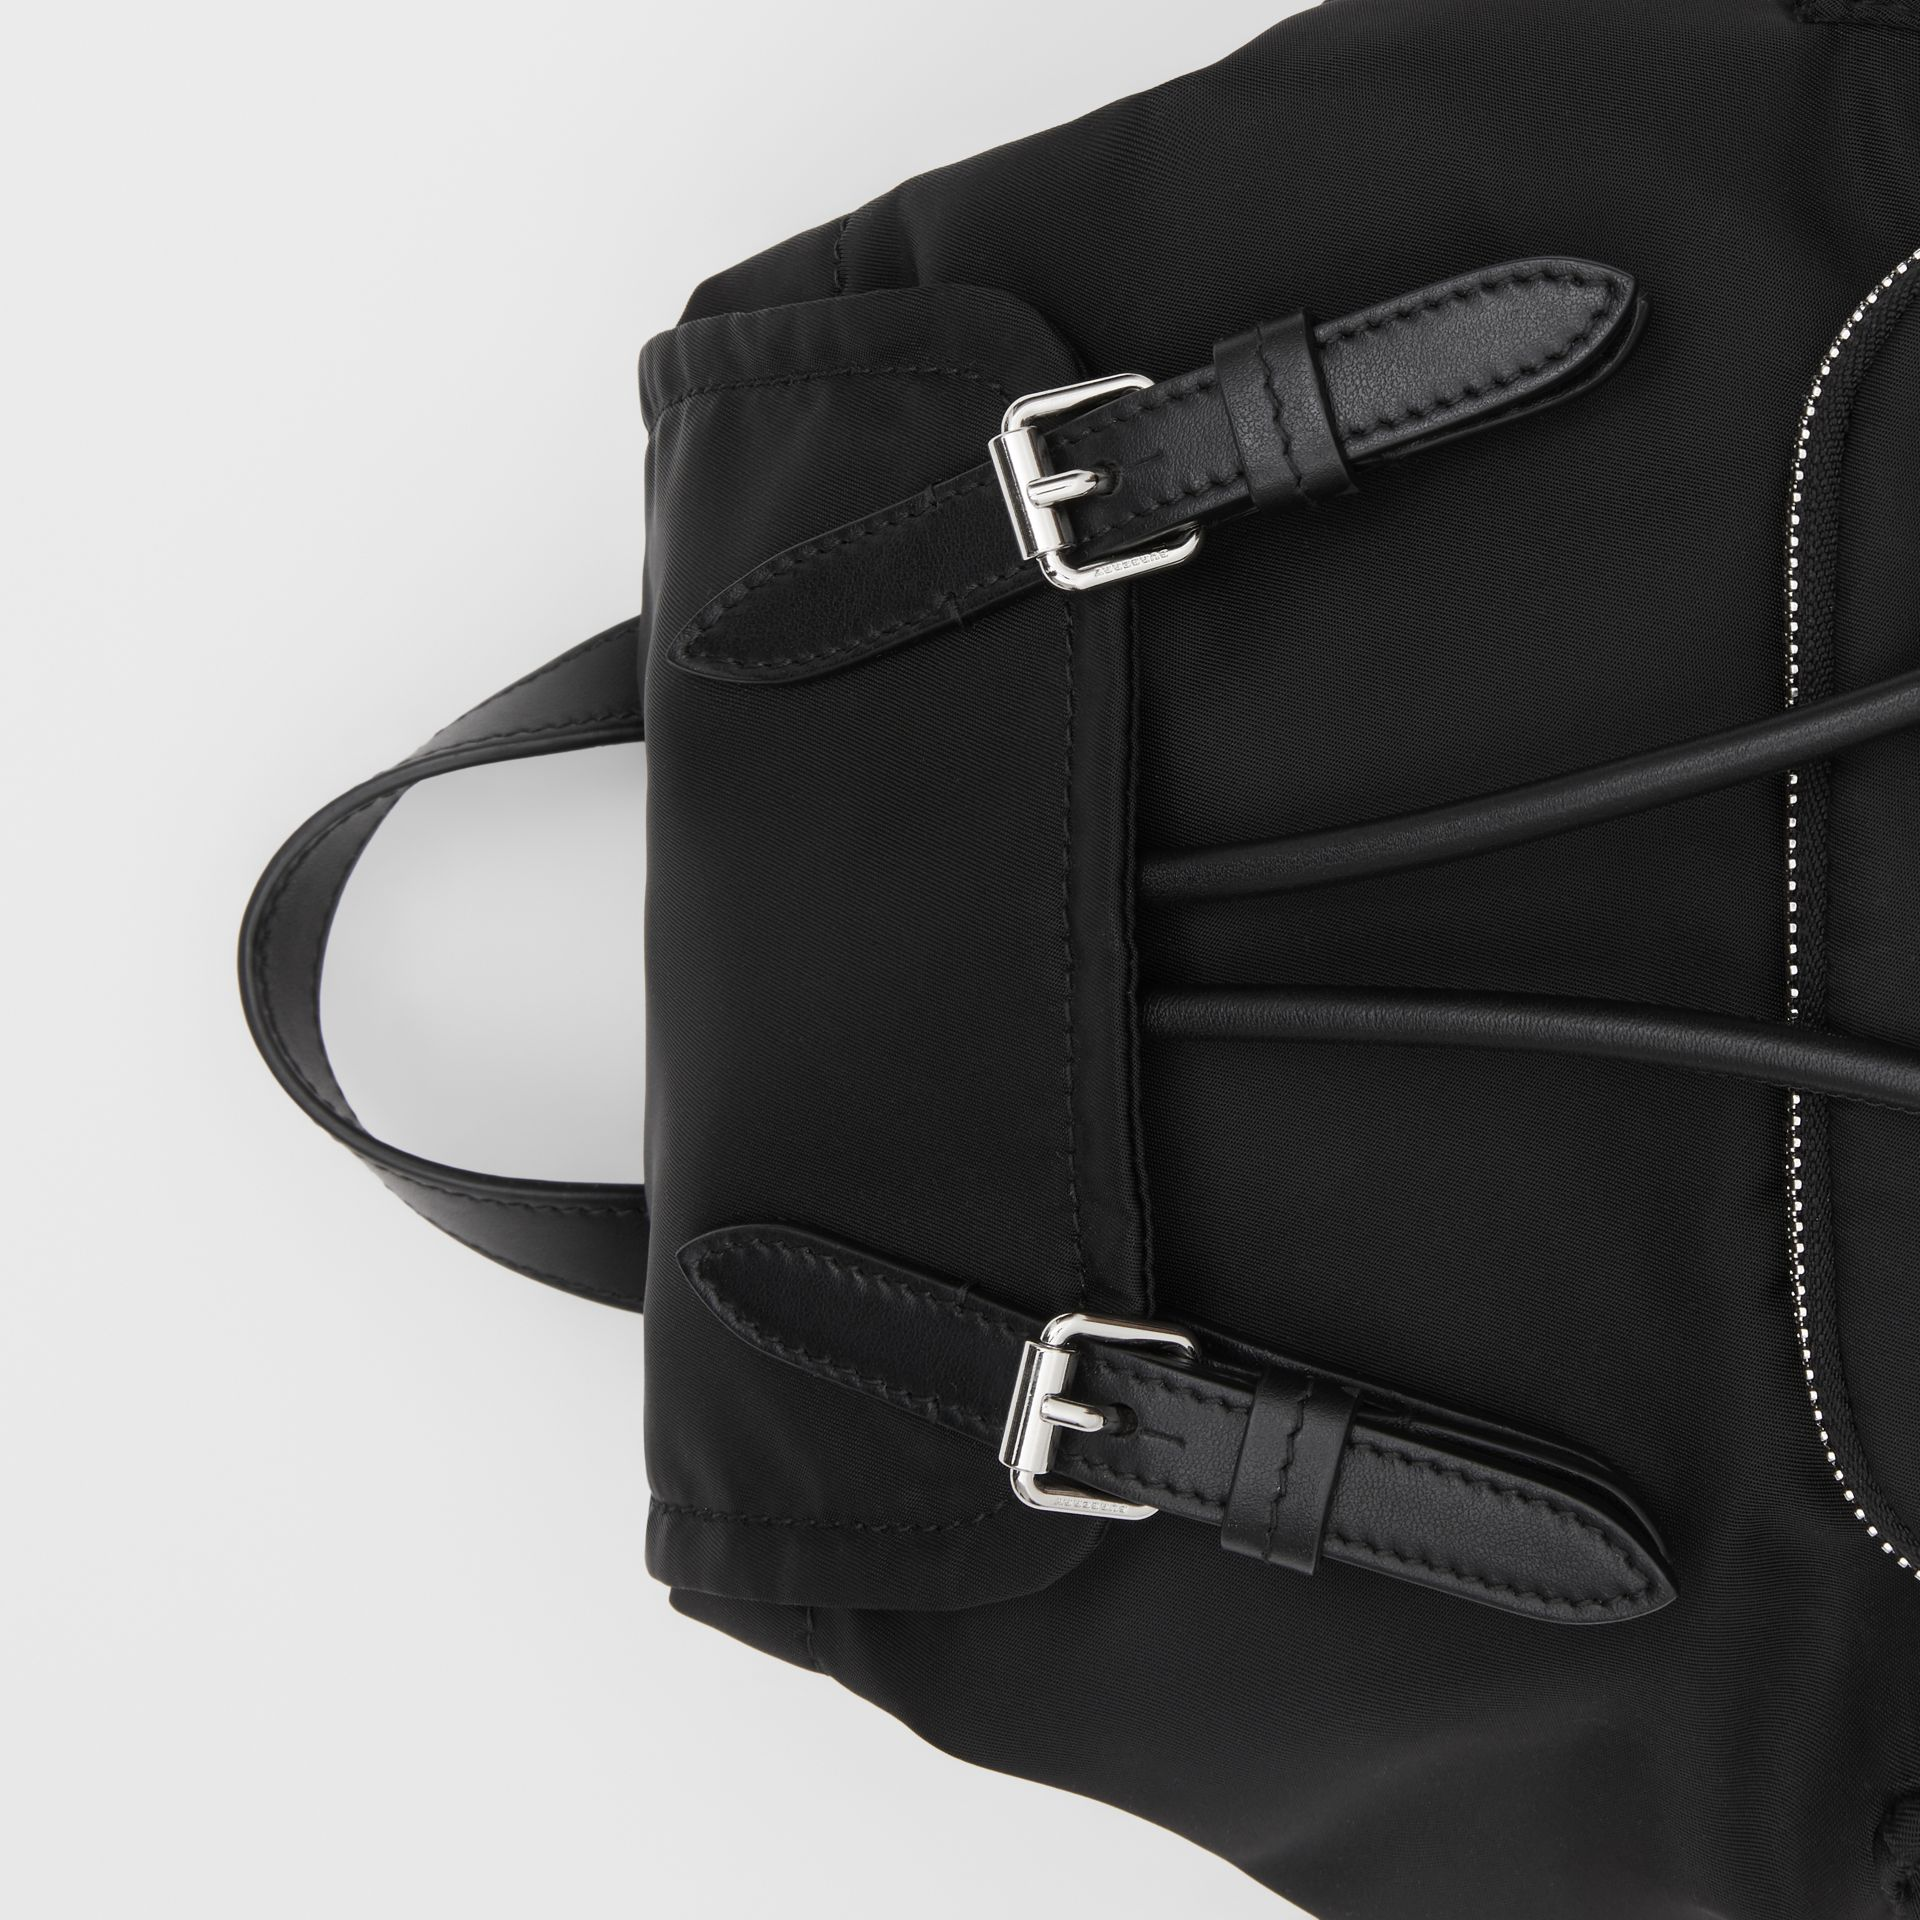 Petit sac The Rucksack en nylon avec logo (Noir) - Femme | Burberry - photo de la galerie 1